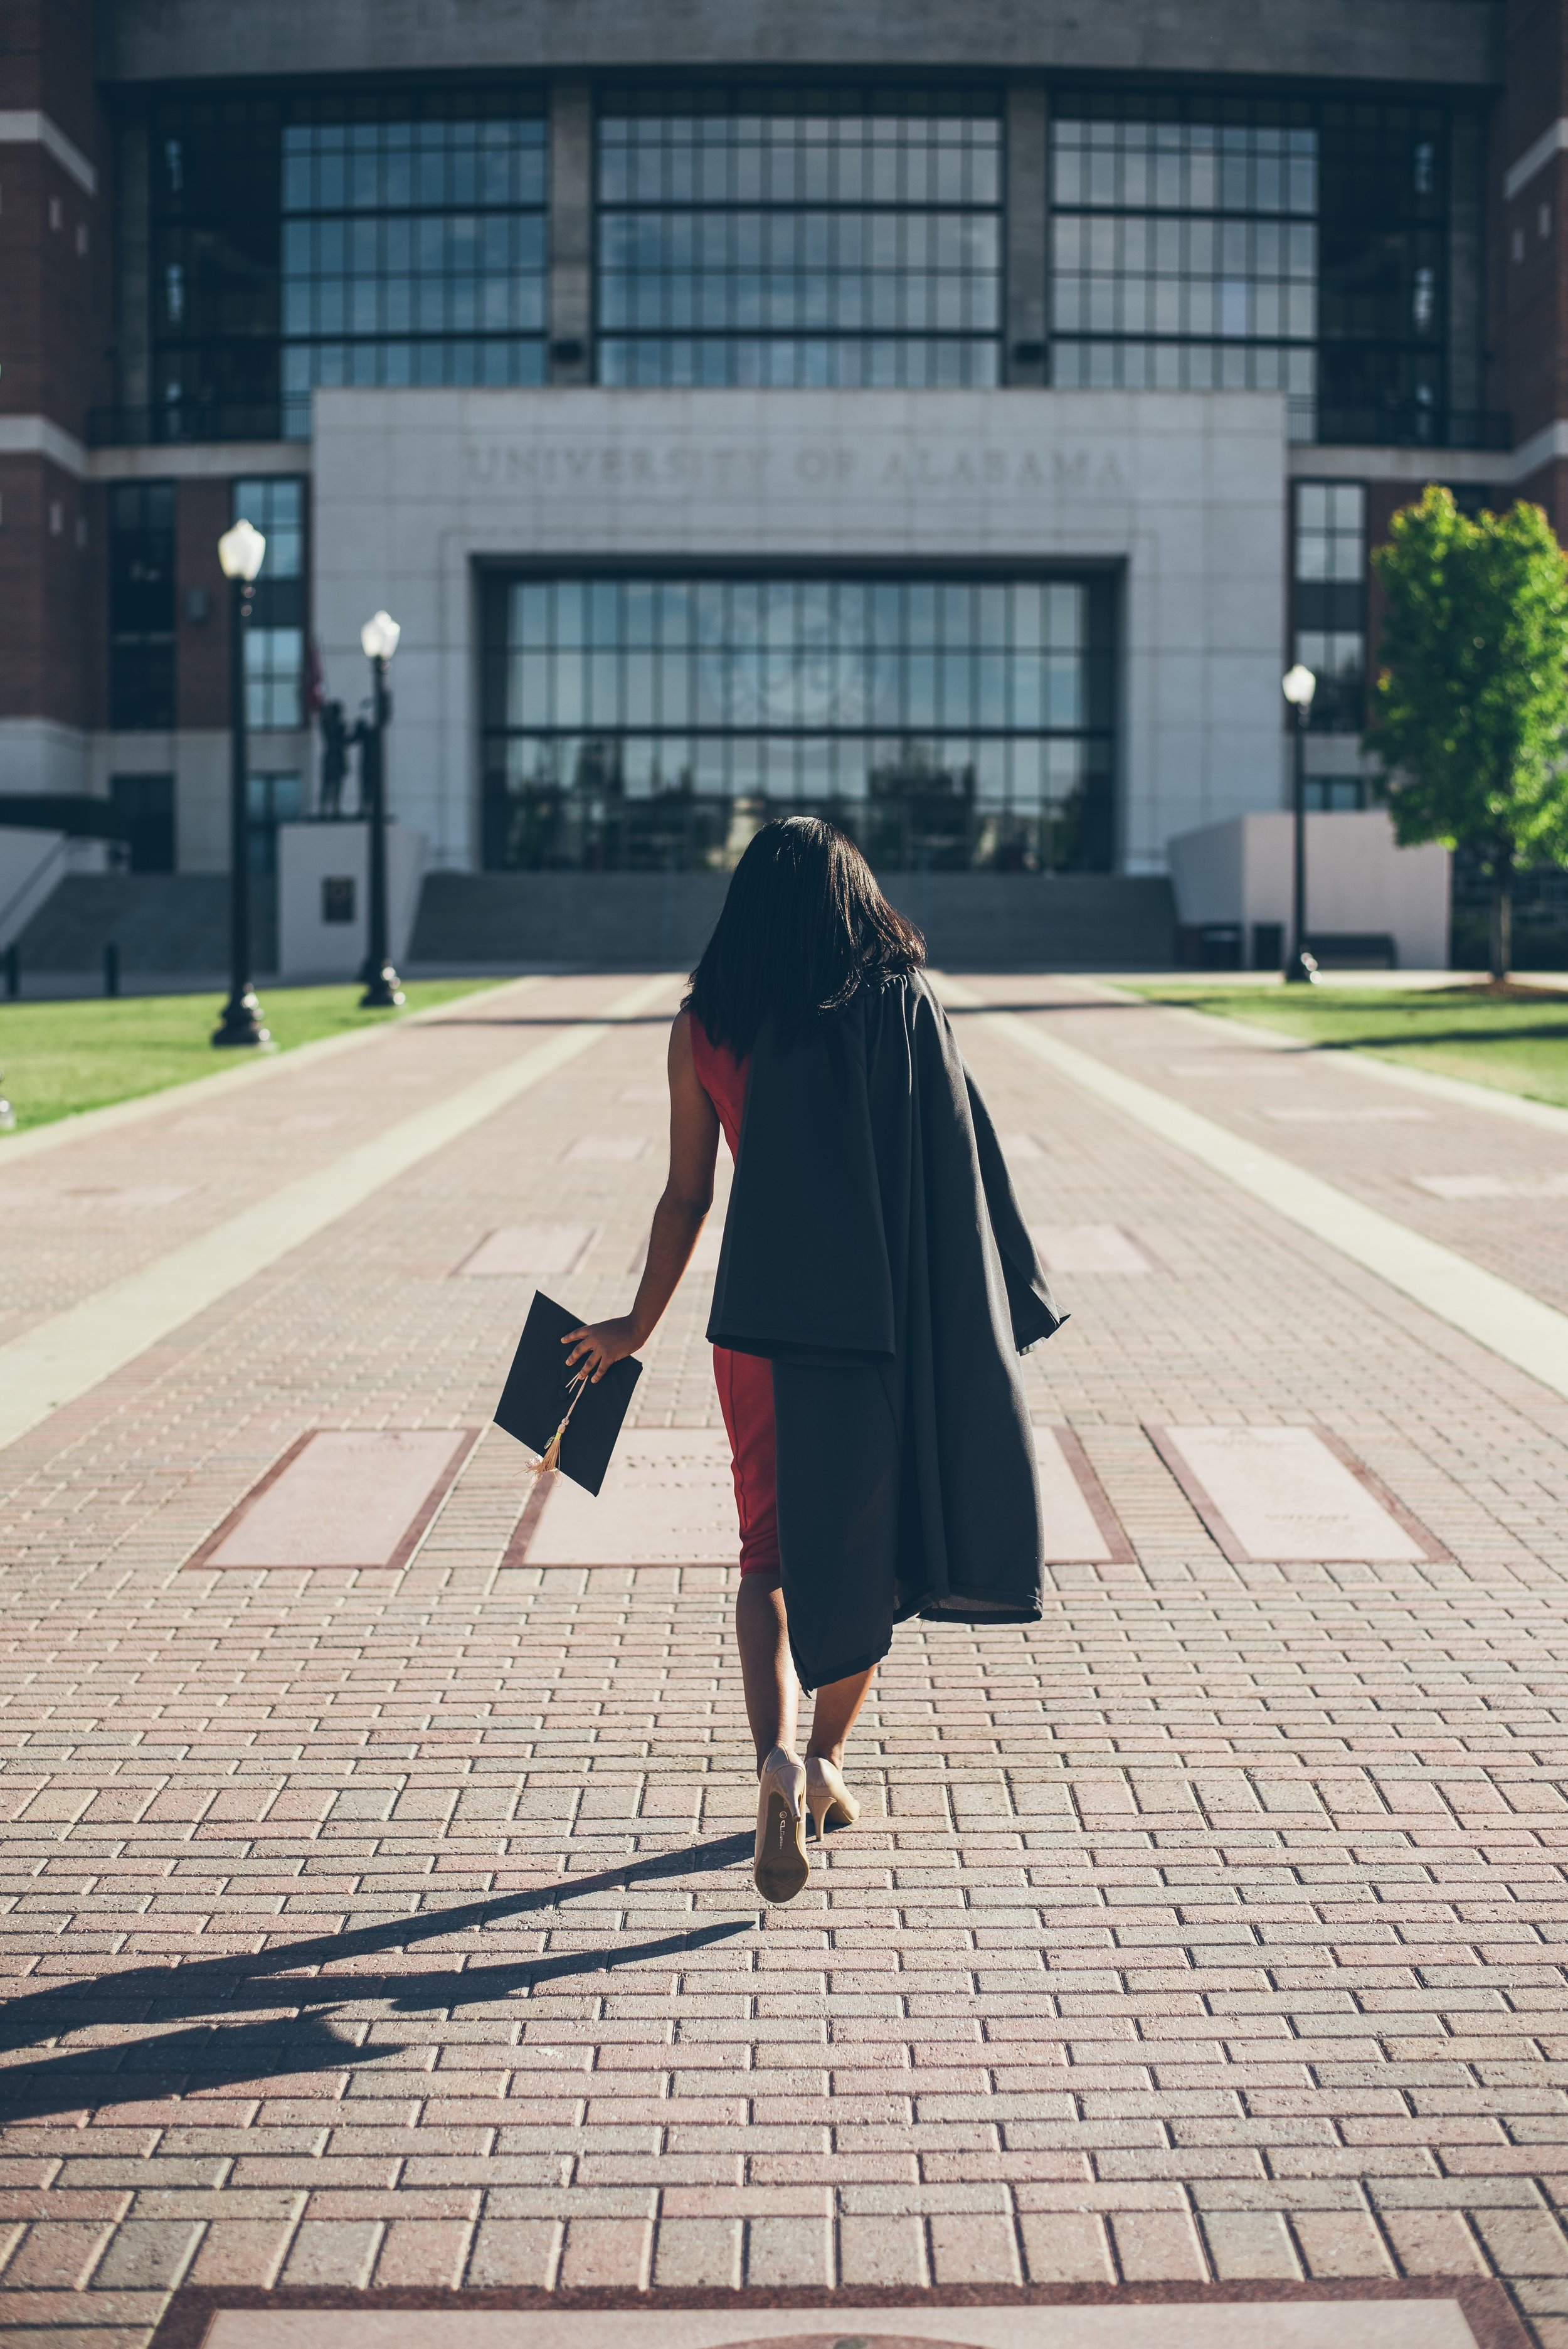 A woman walks away sporting a graduation cap and gown